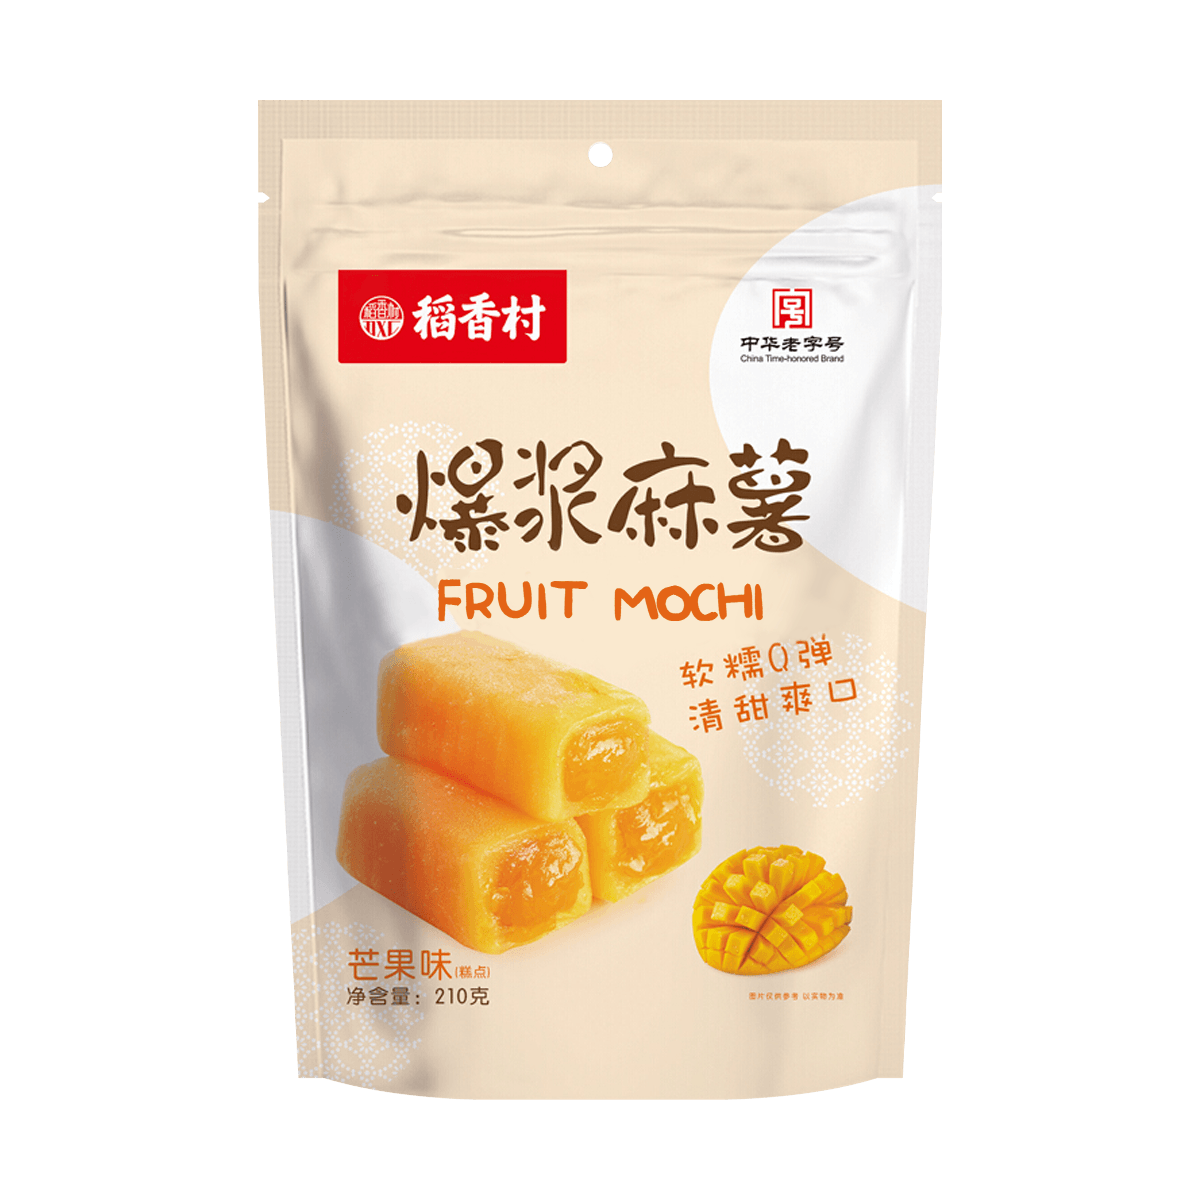 Yamibuy.com:Customer reviews:DXC-Fruit Mochi Mango Flavor 210g